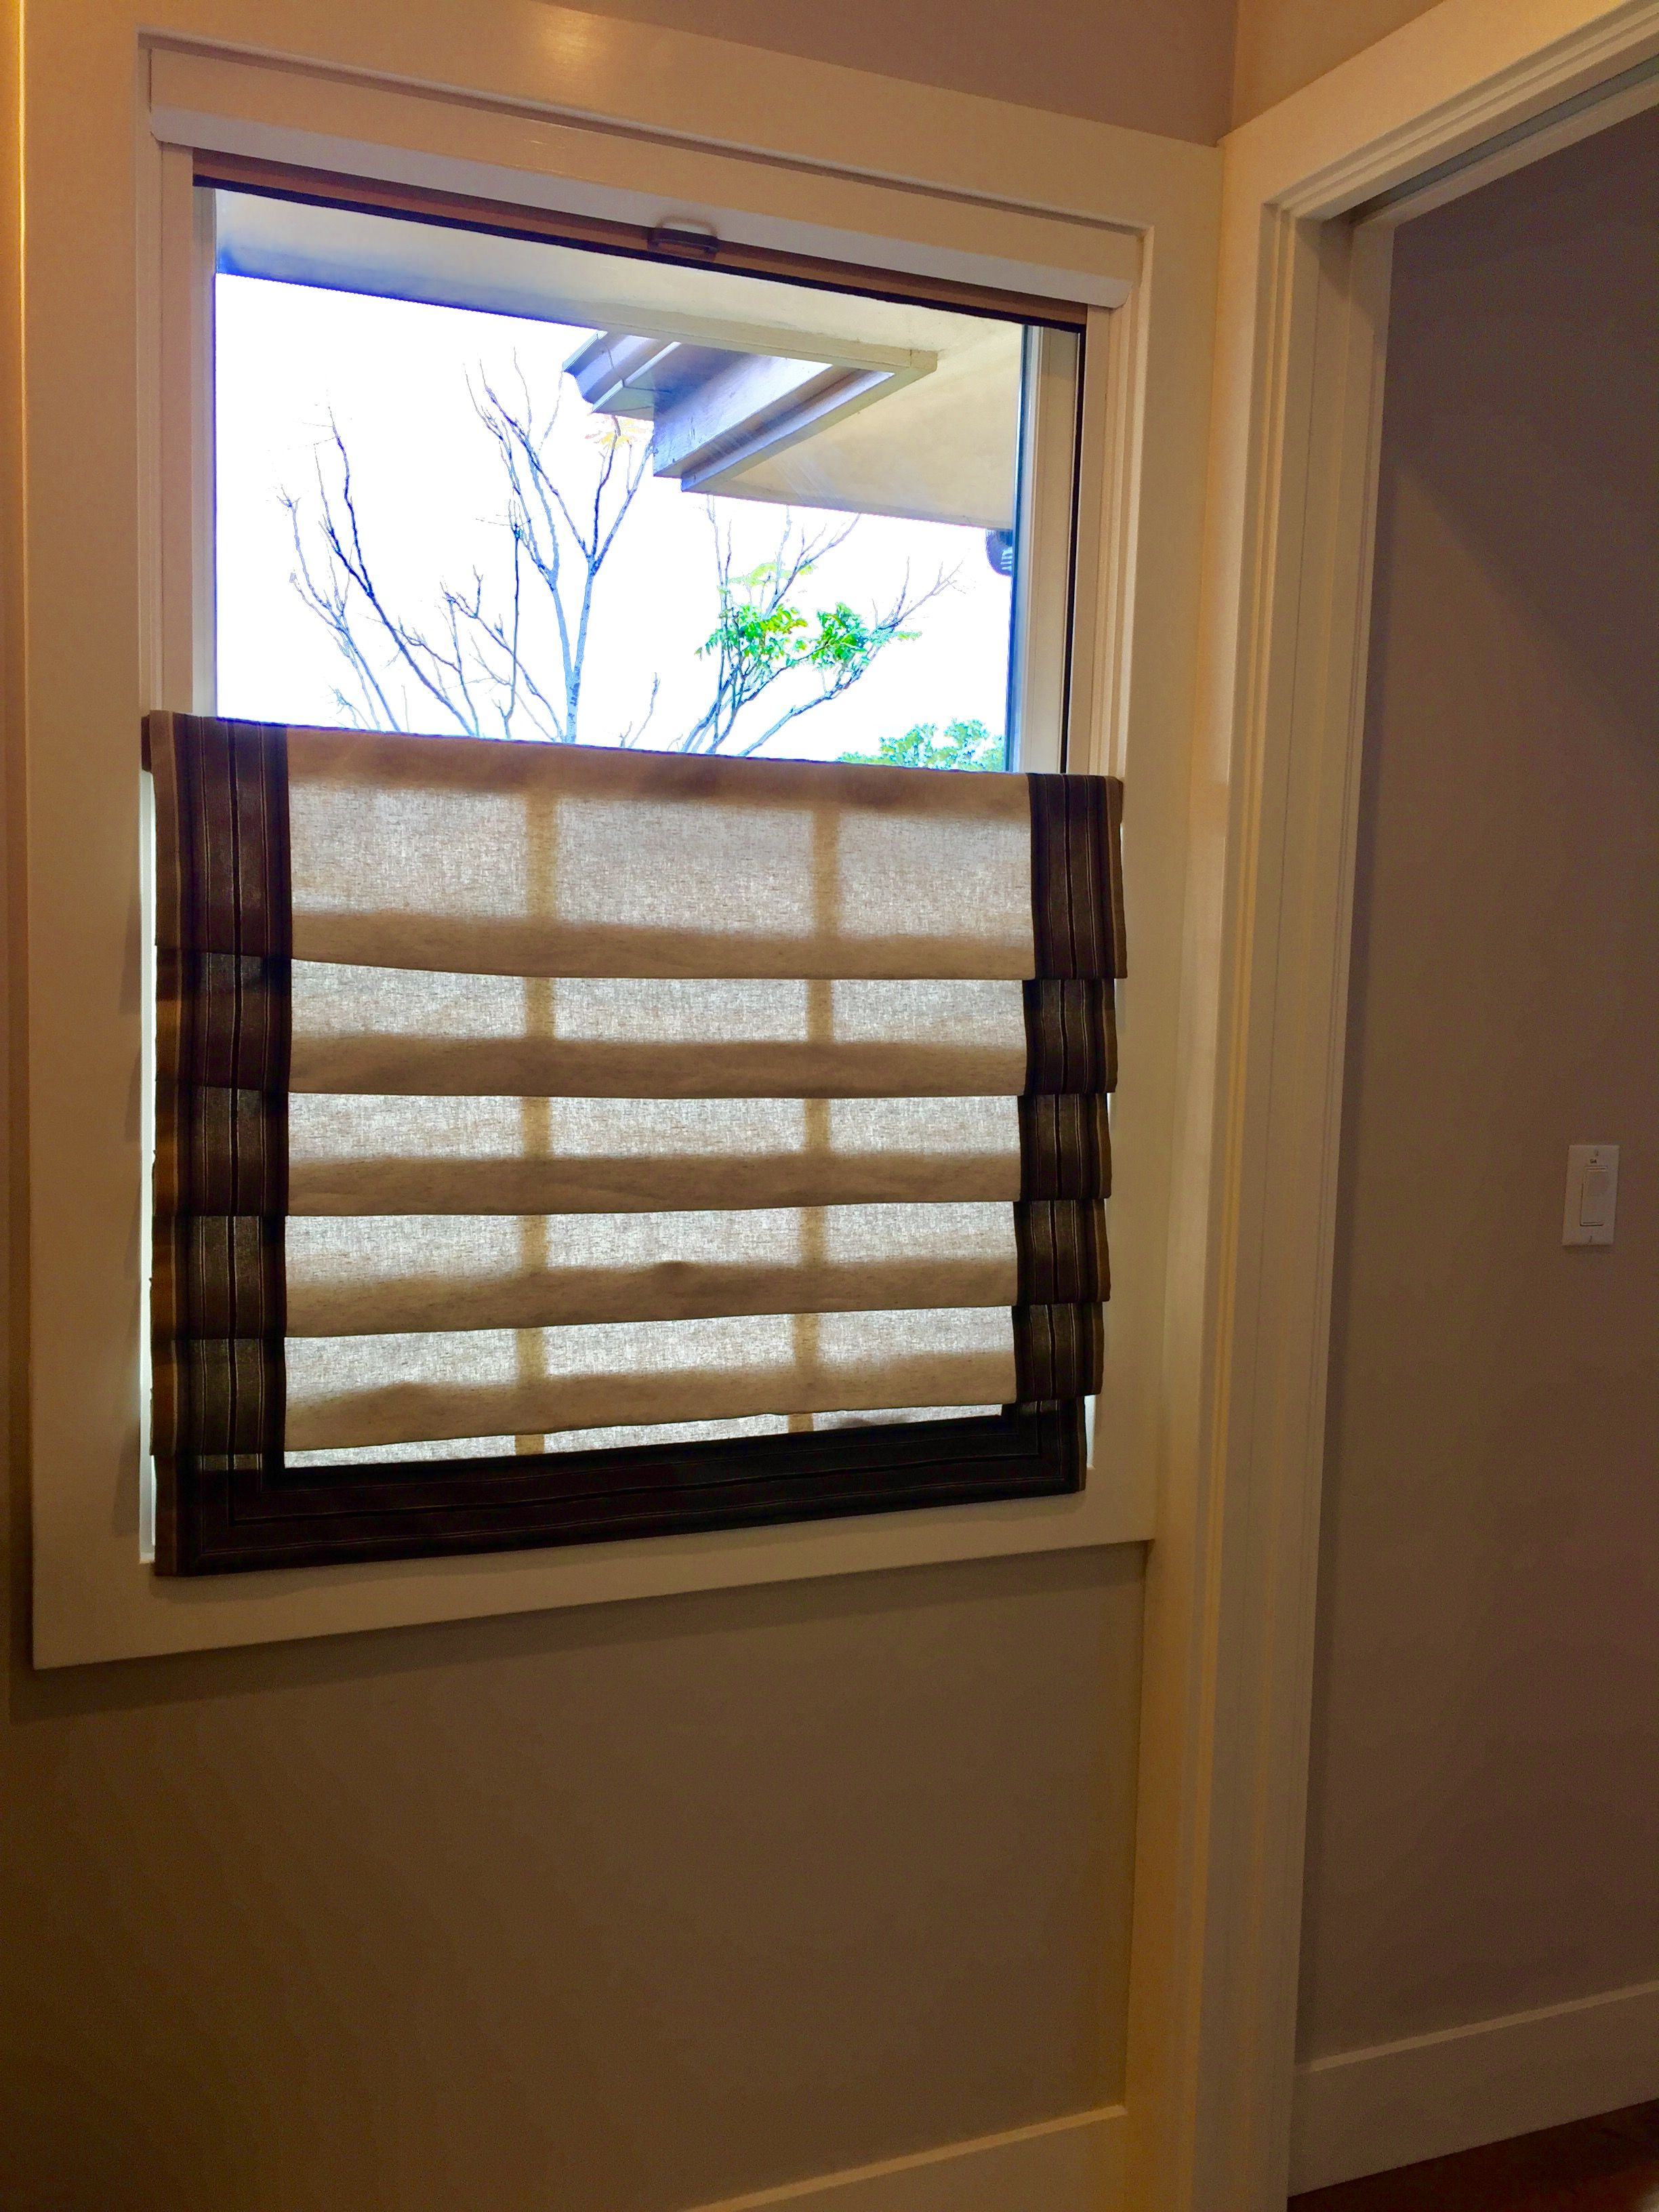 Bottom Mounted Roman Shade Covers Lower Half Of Window Window Coverings Windows Diy Window Treatments